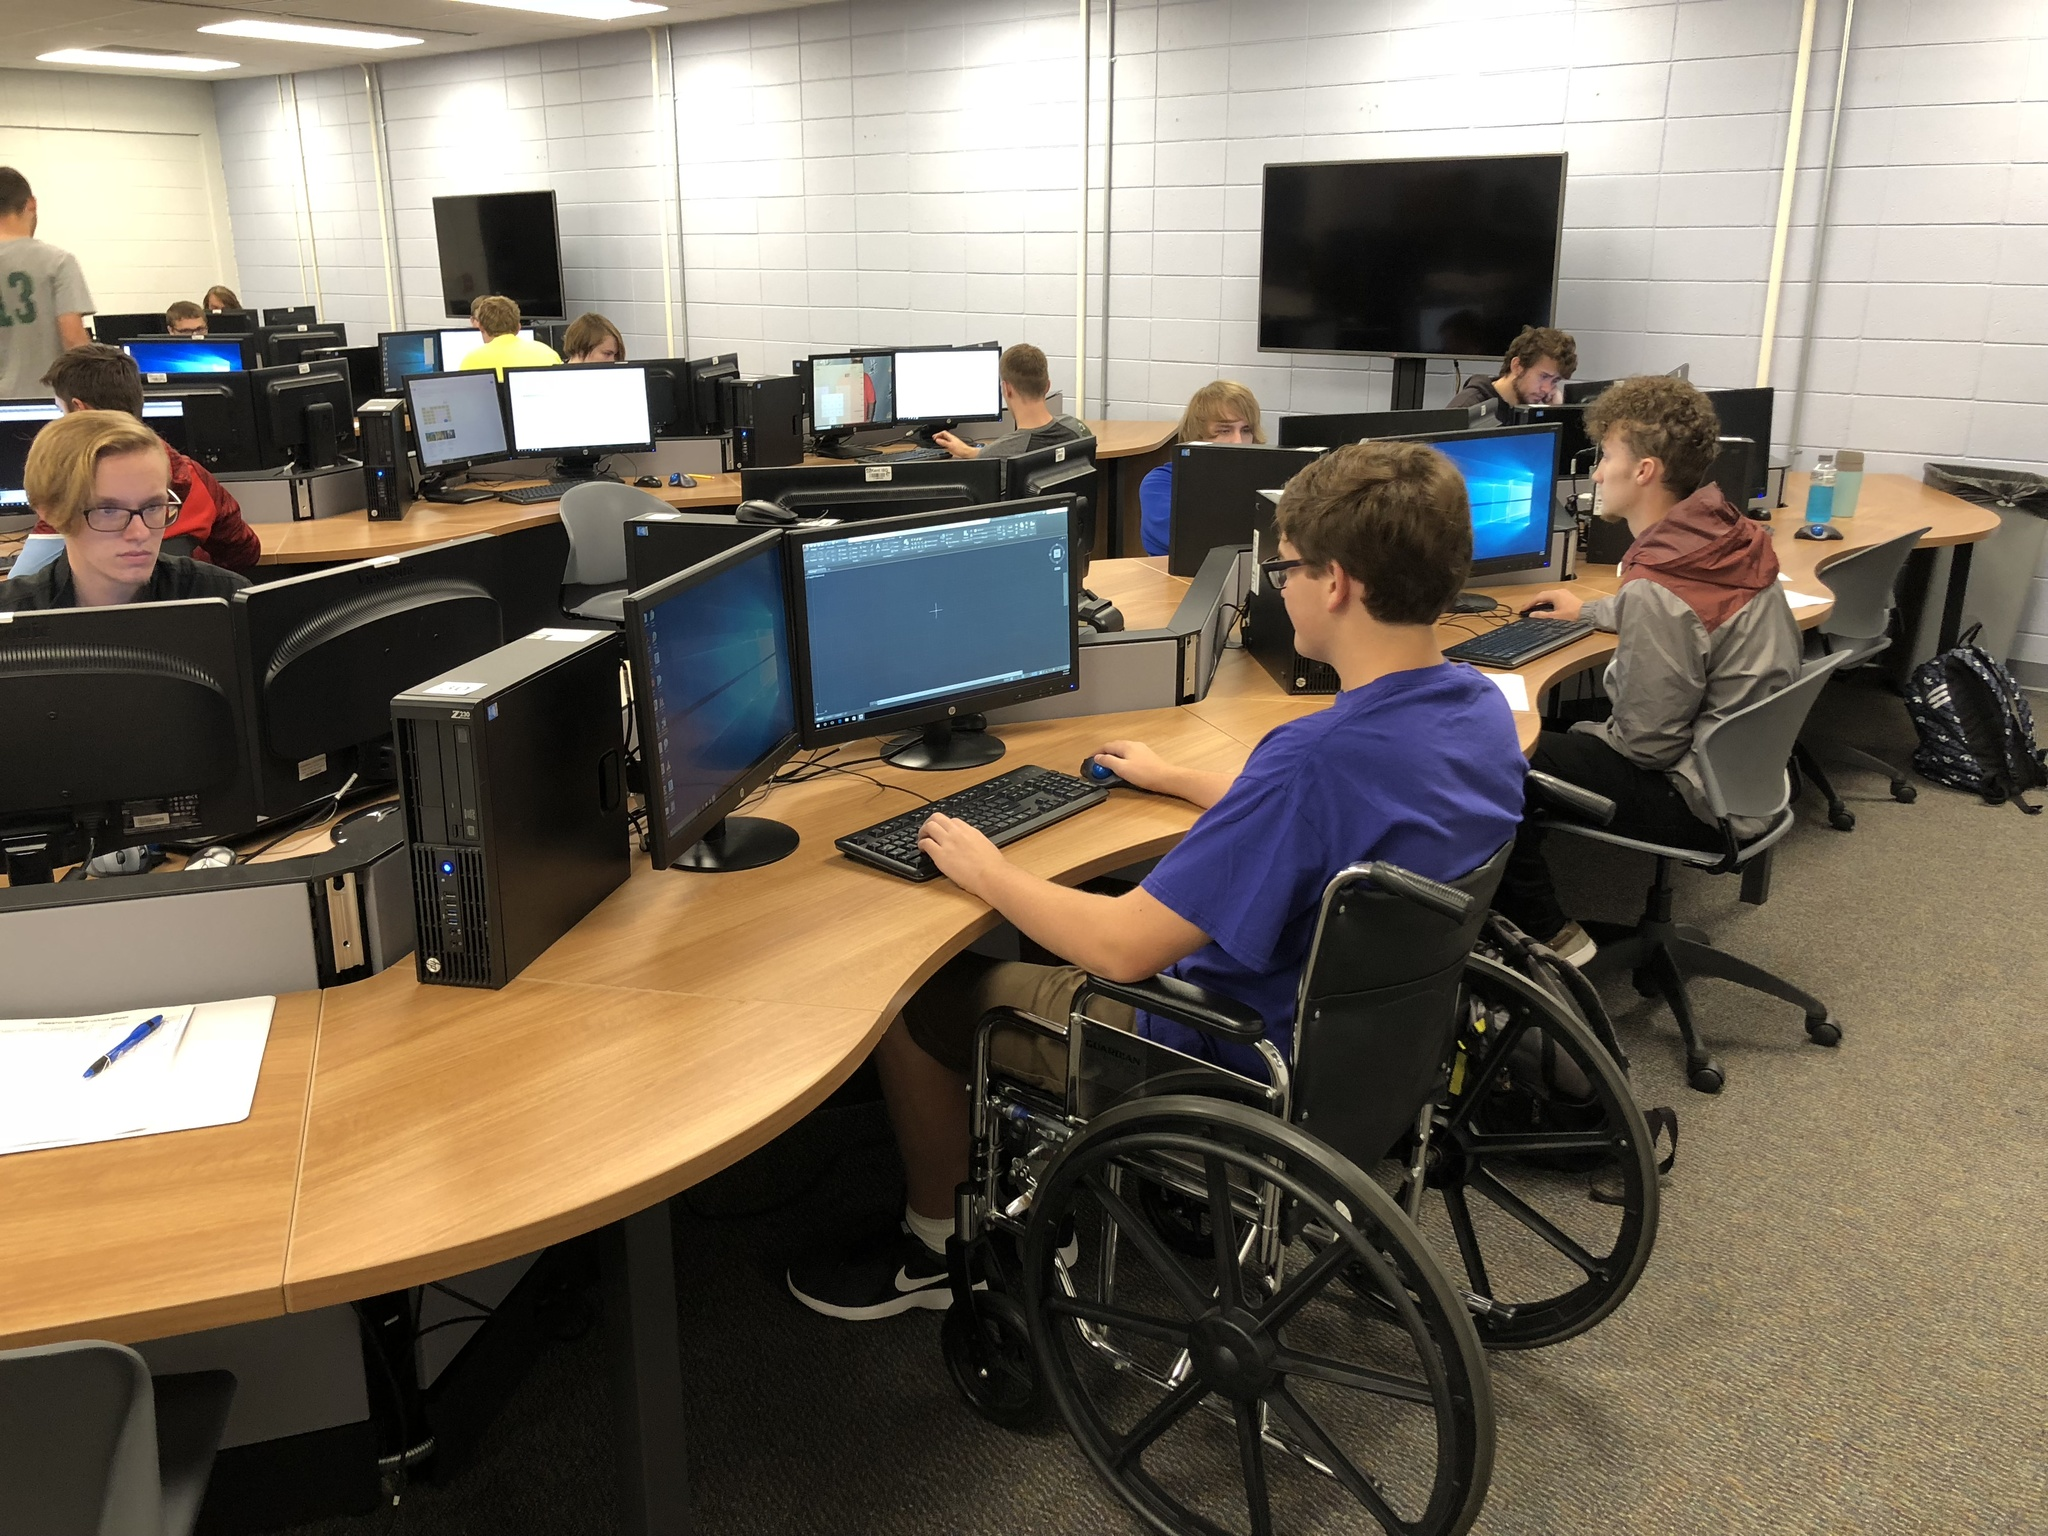 A student in a wheelchair is working on a design project at one of the new workstations. Other students are also working in the background.